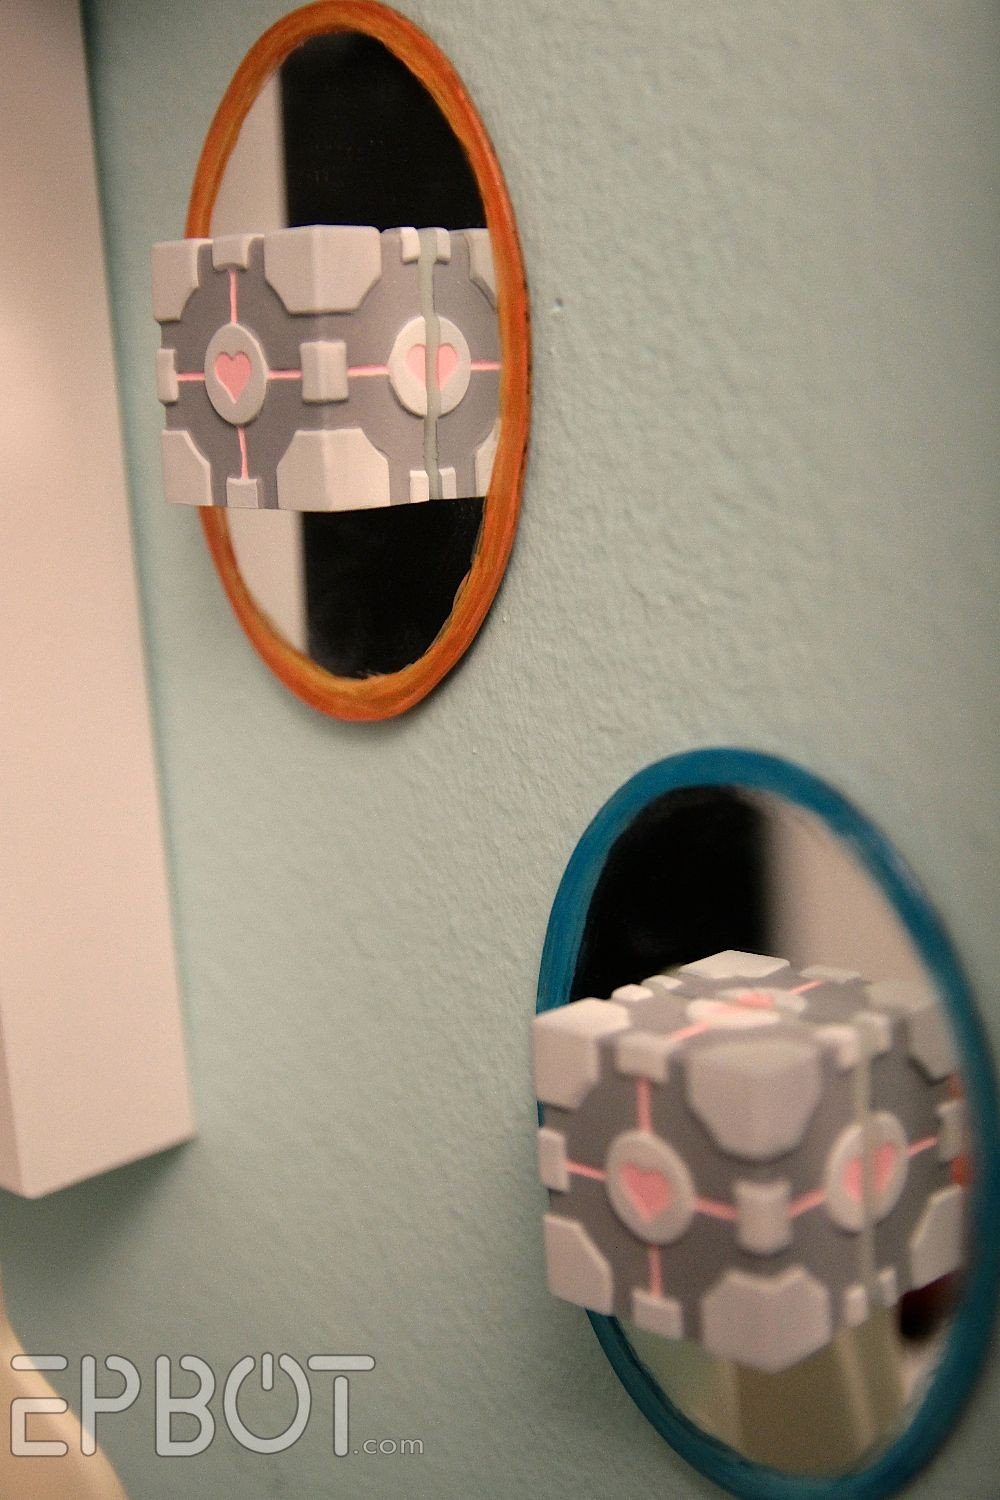 Companion Cube Papercraft Mini Wall Portals & Panion Cubes Nice Detailed Tutorial that